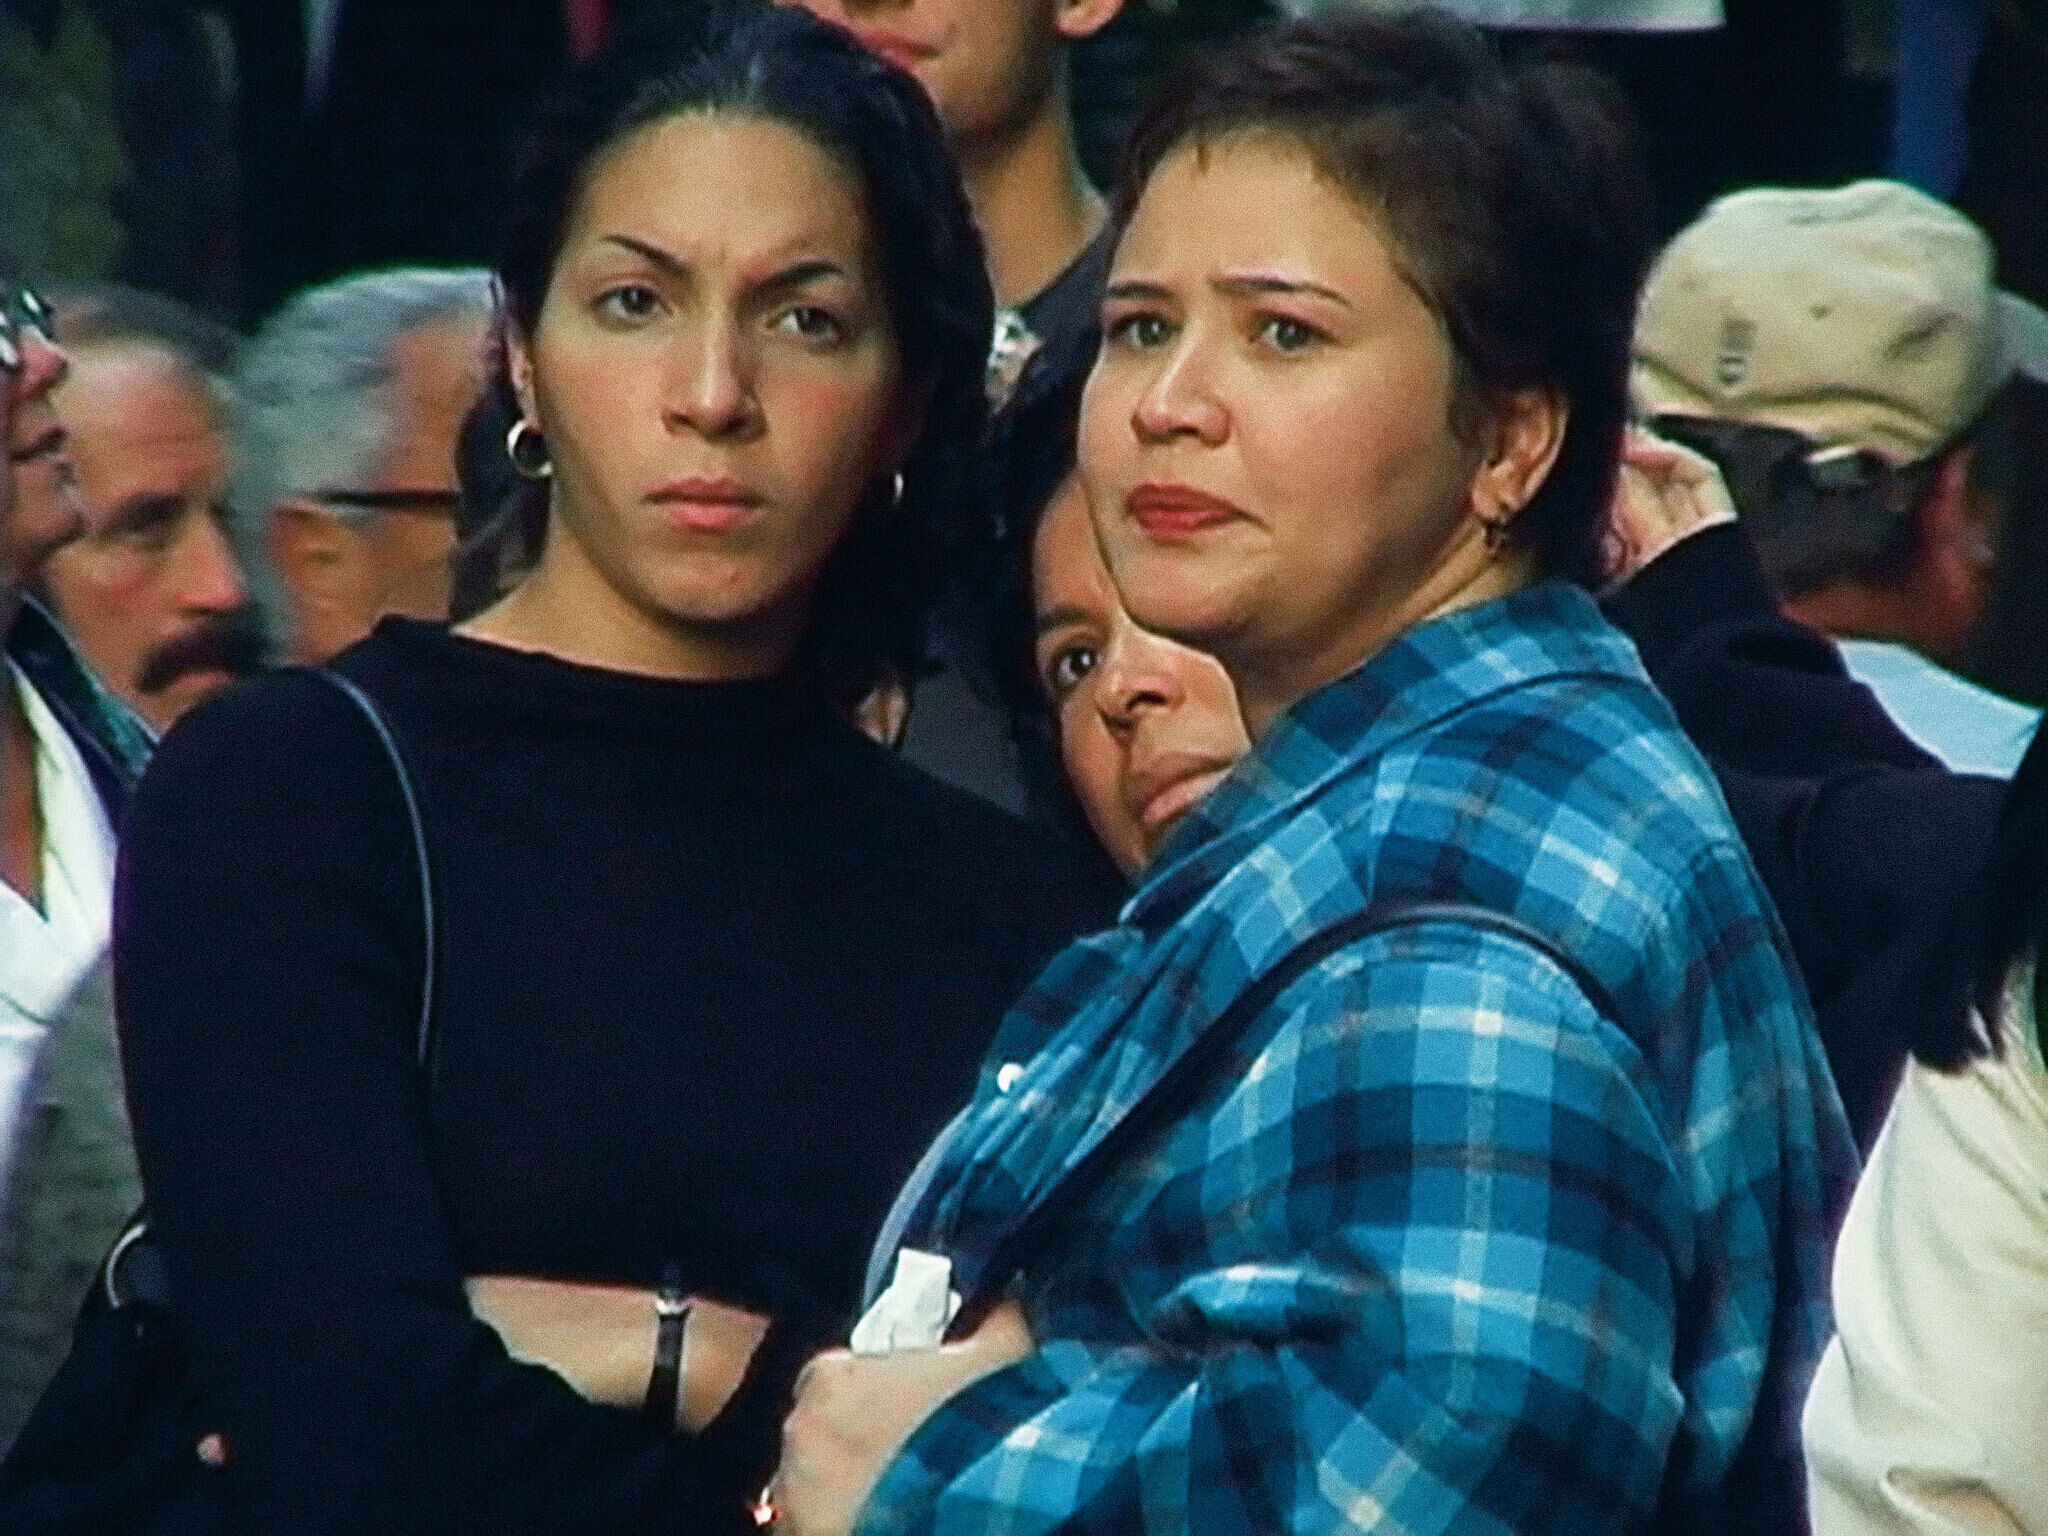 Two women pictured with intense expressions.